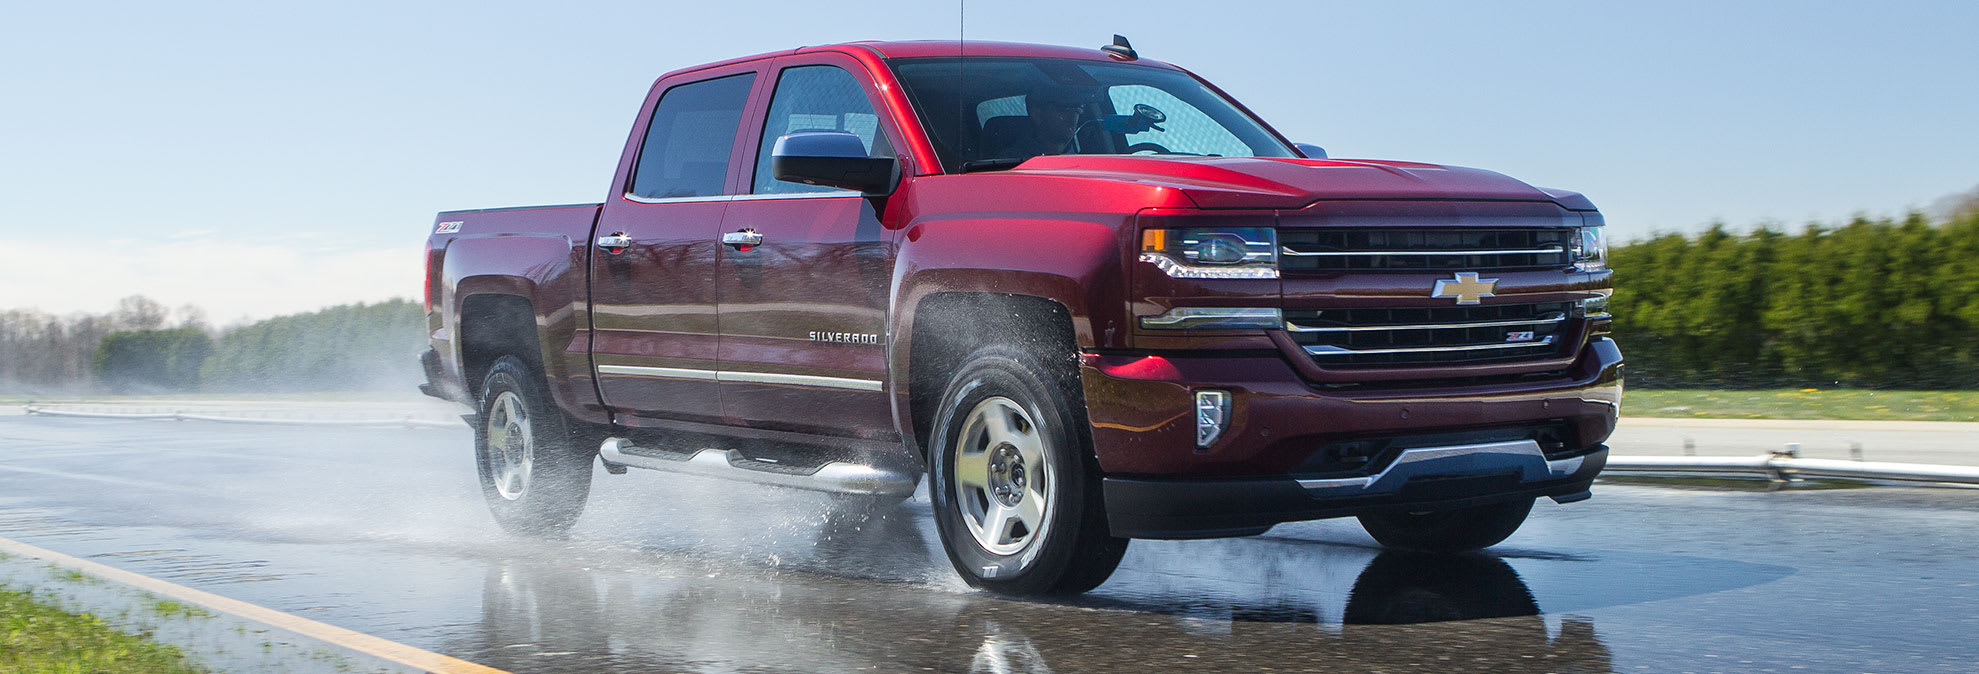 Top Pick Tires for 2018 - Consumer Reports